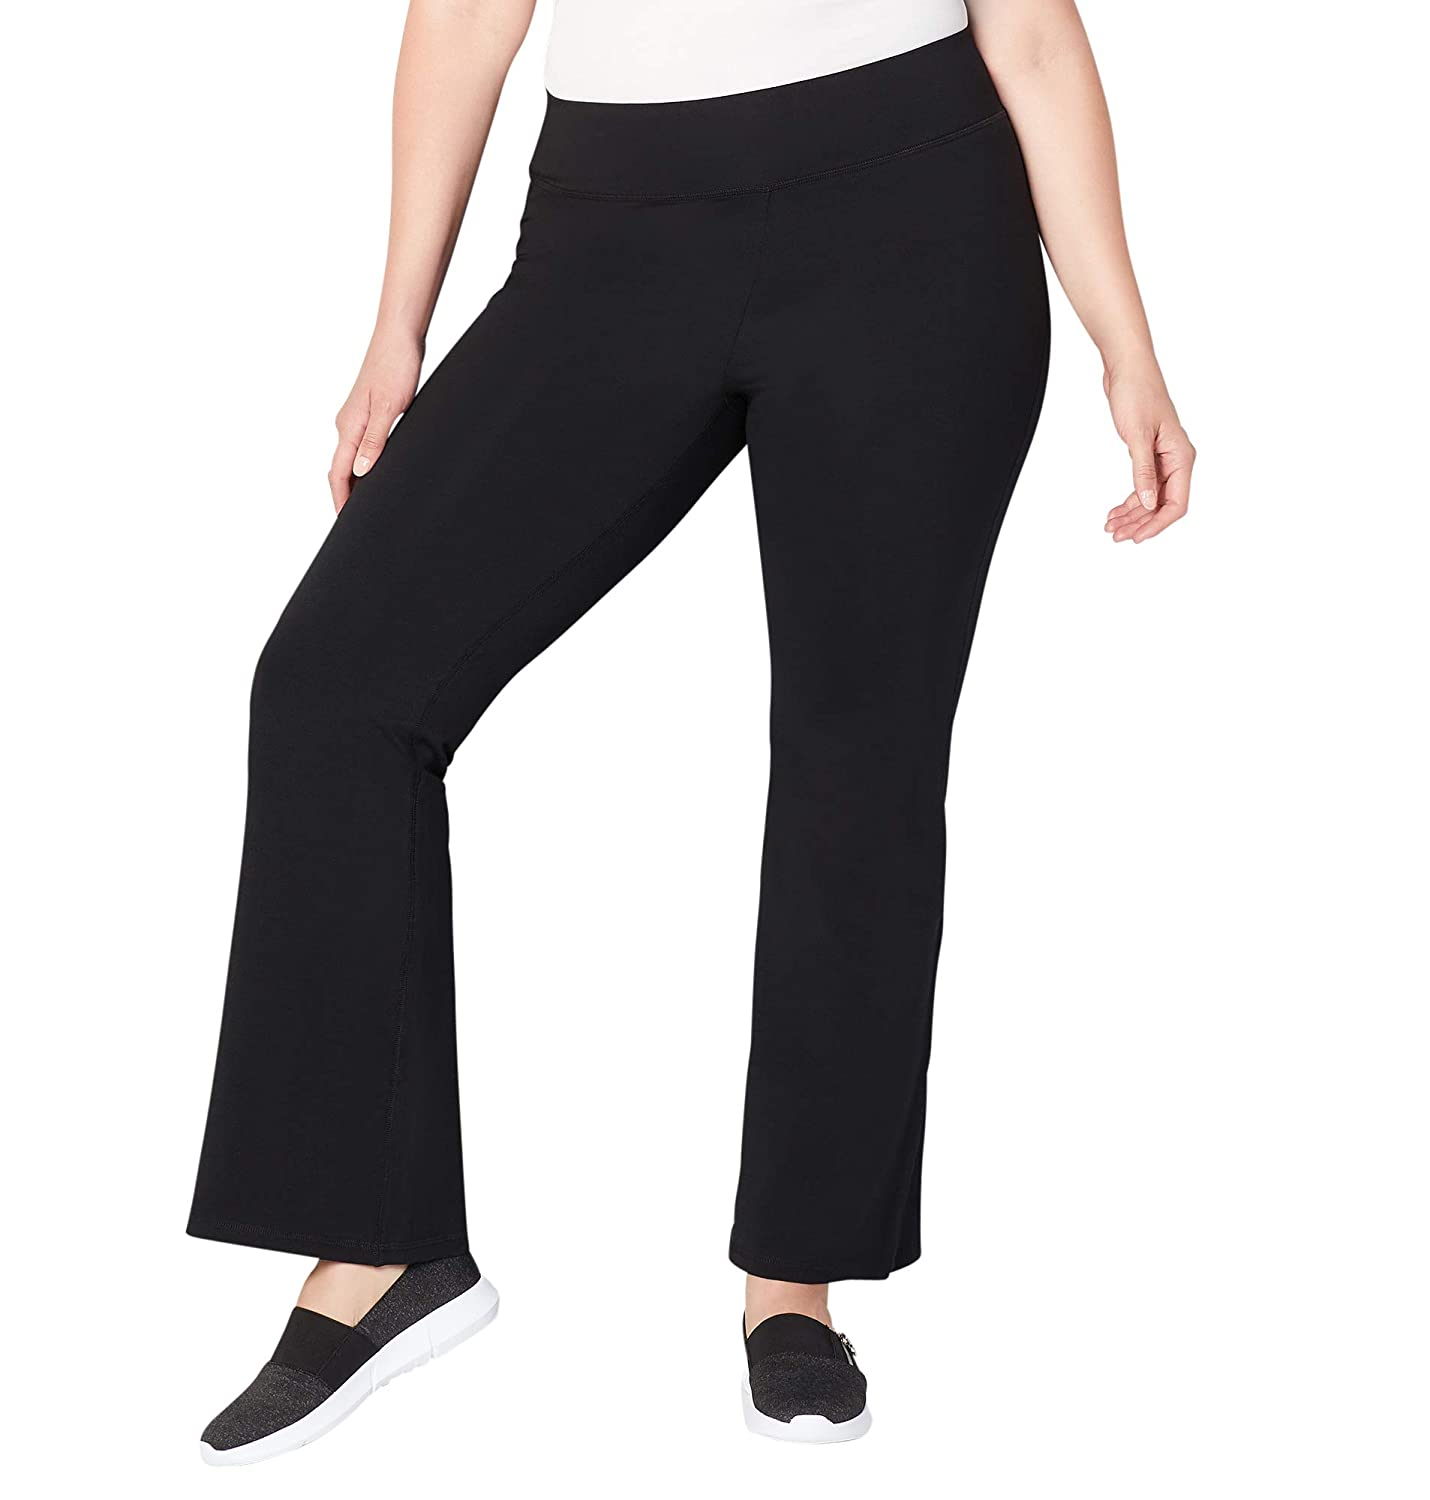 Avenue Women's Pima Cotton Flare Leg Active Pant 18/20 Black 40571418